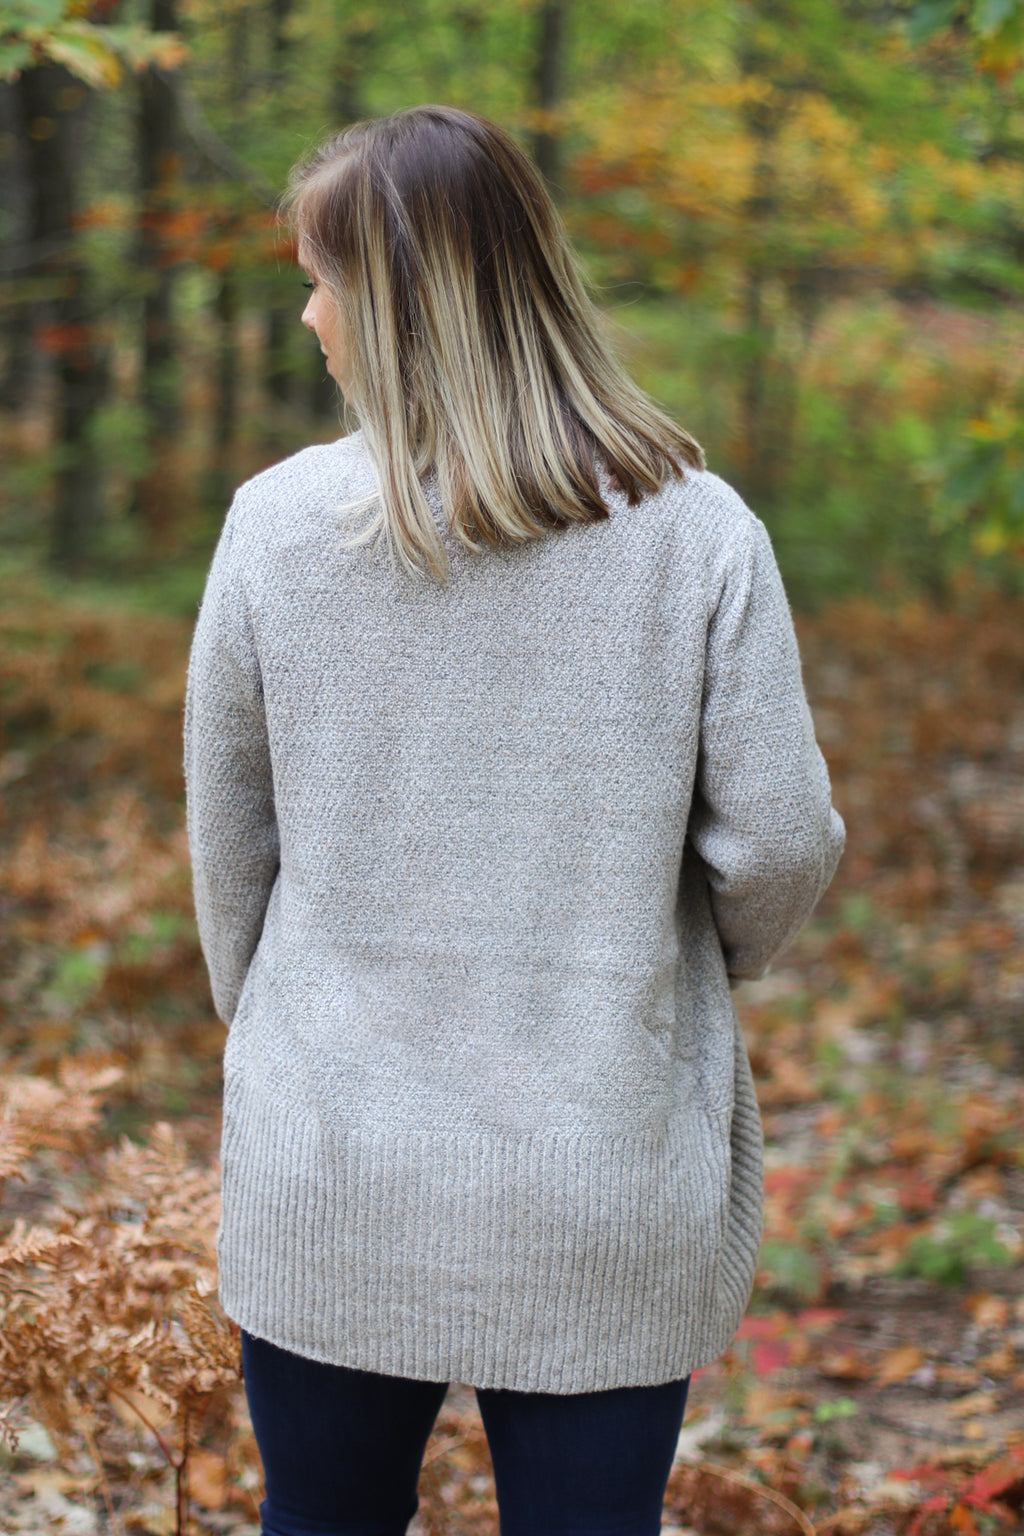 The Brockway Cardigan in Taupe